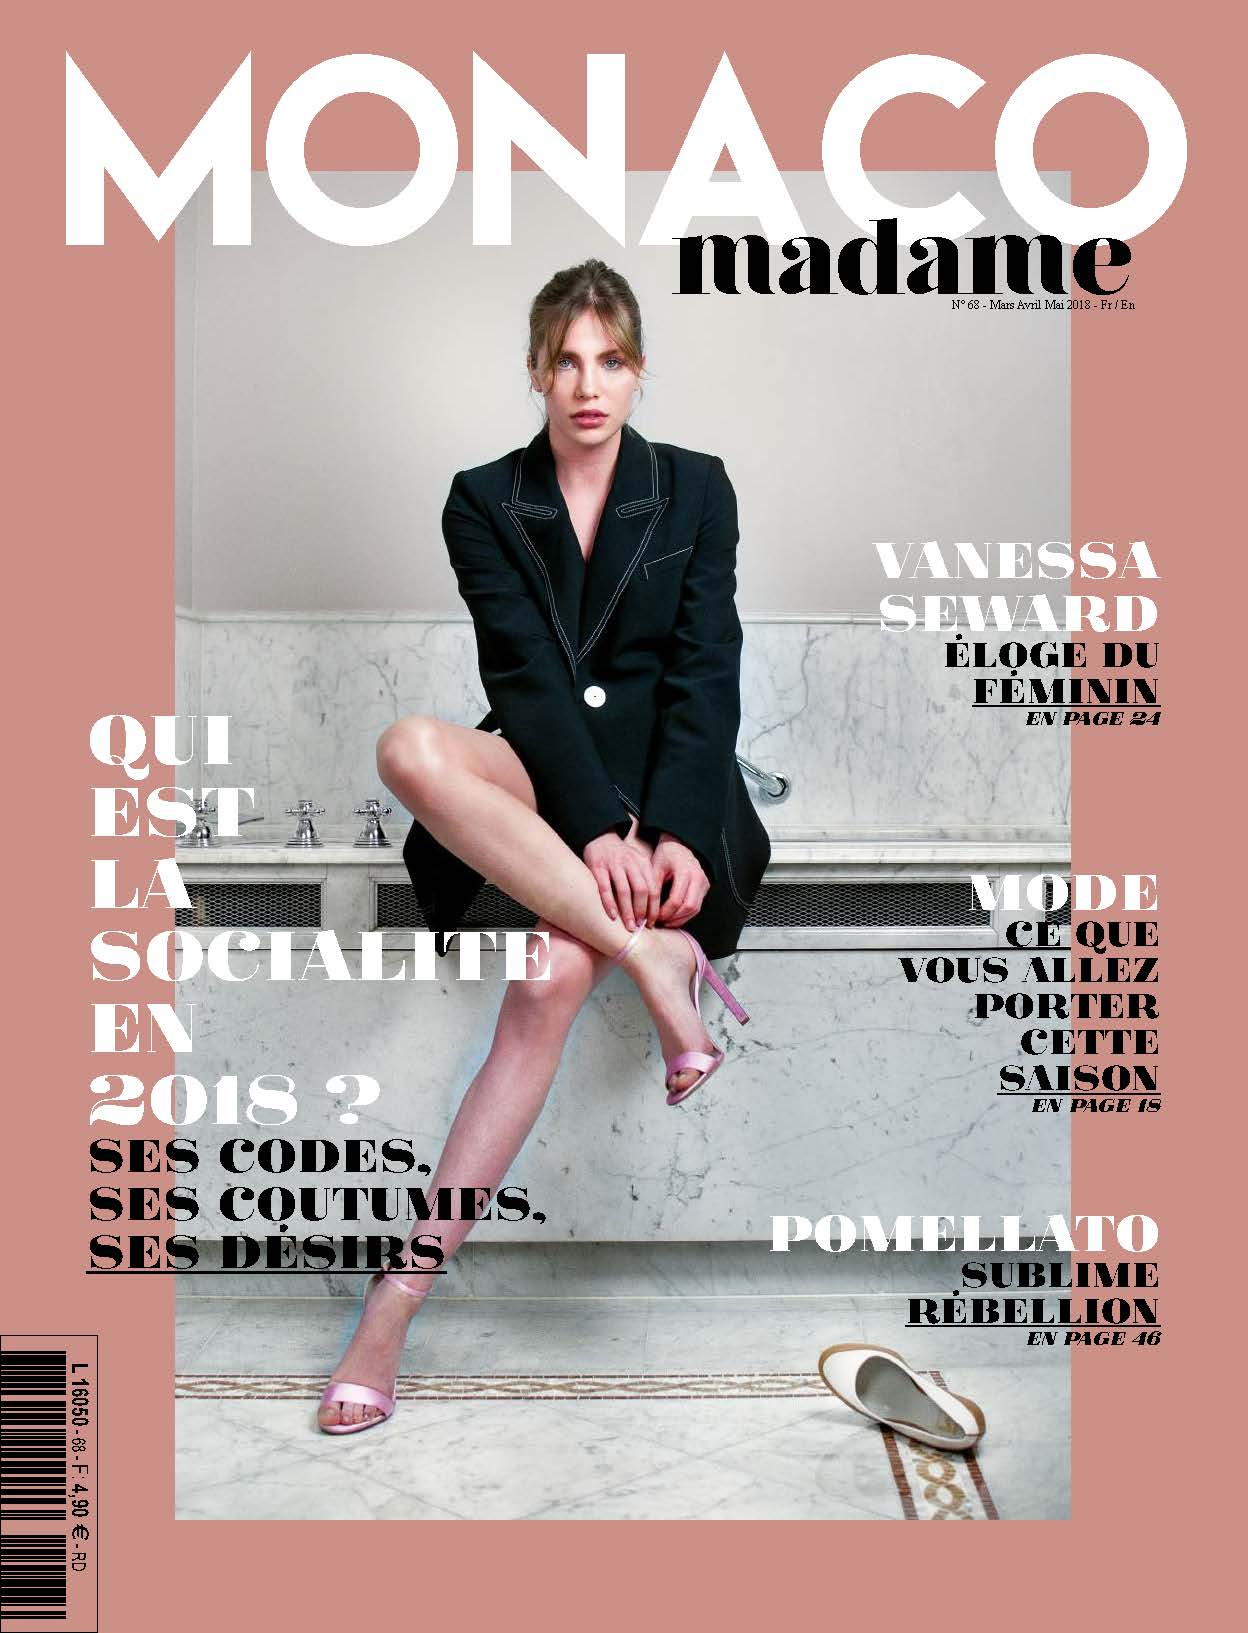 MONACO MADAME SS 18 COVER - copie 2